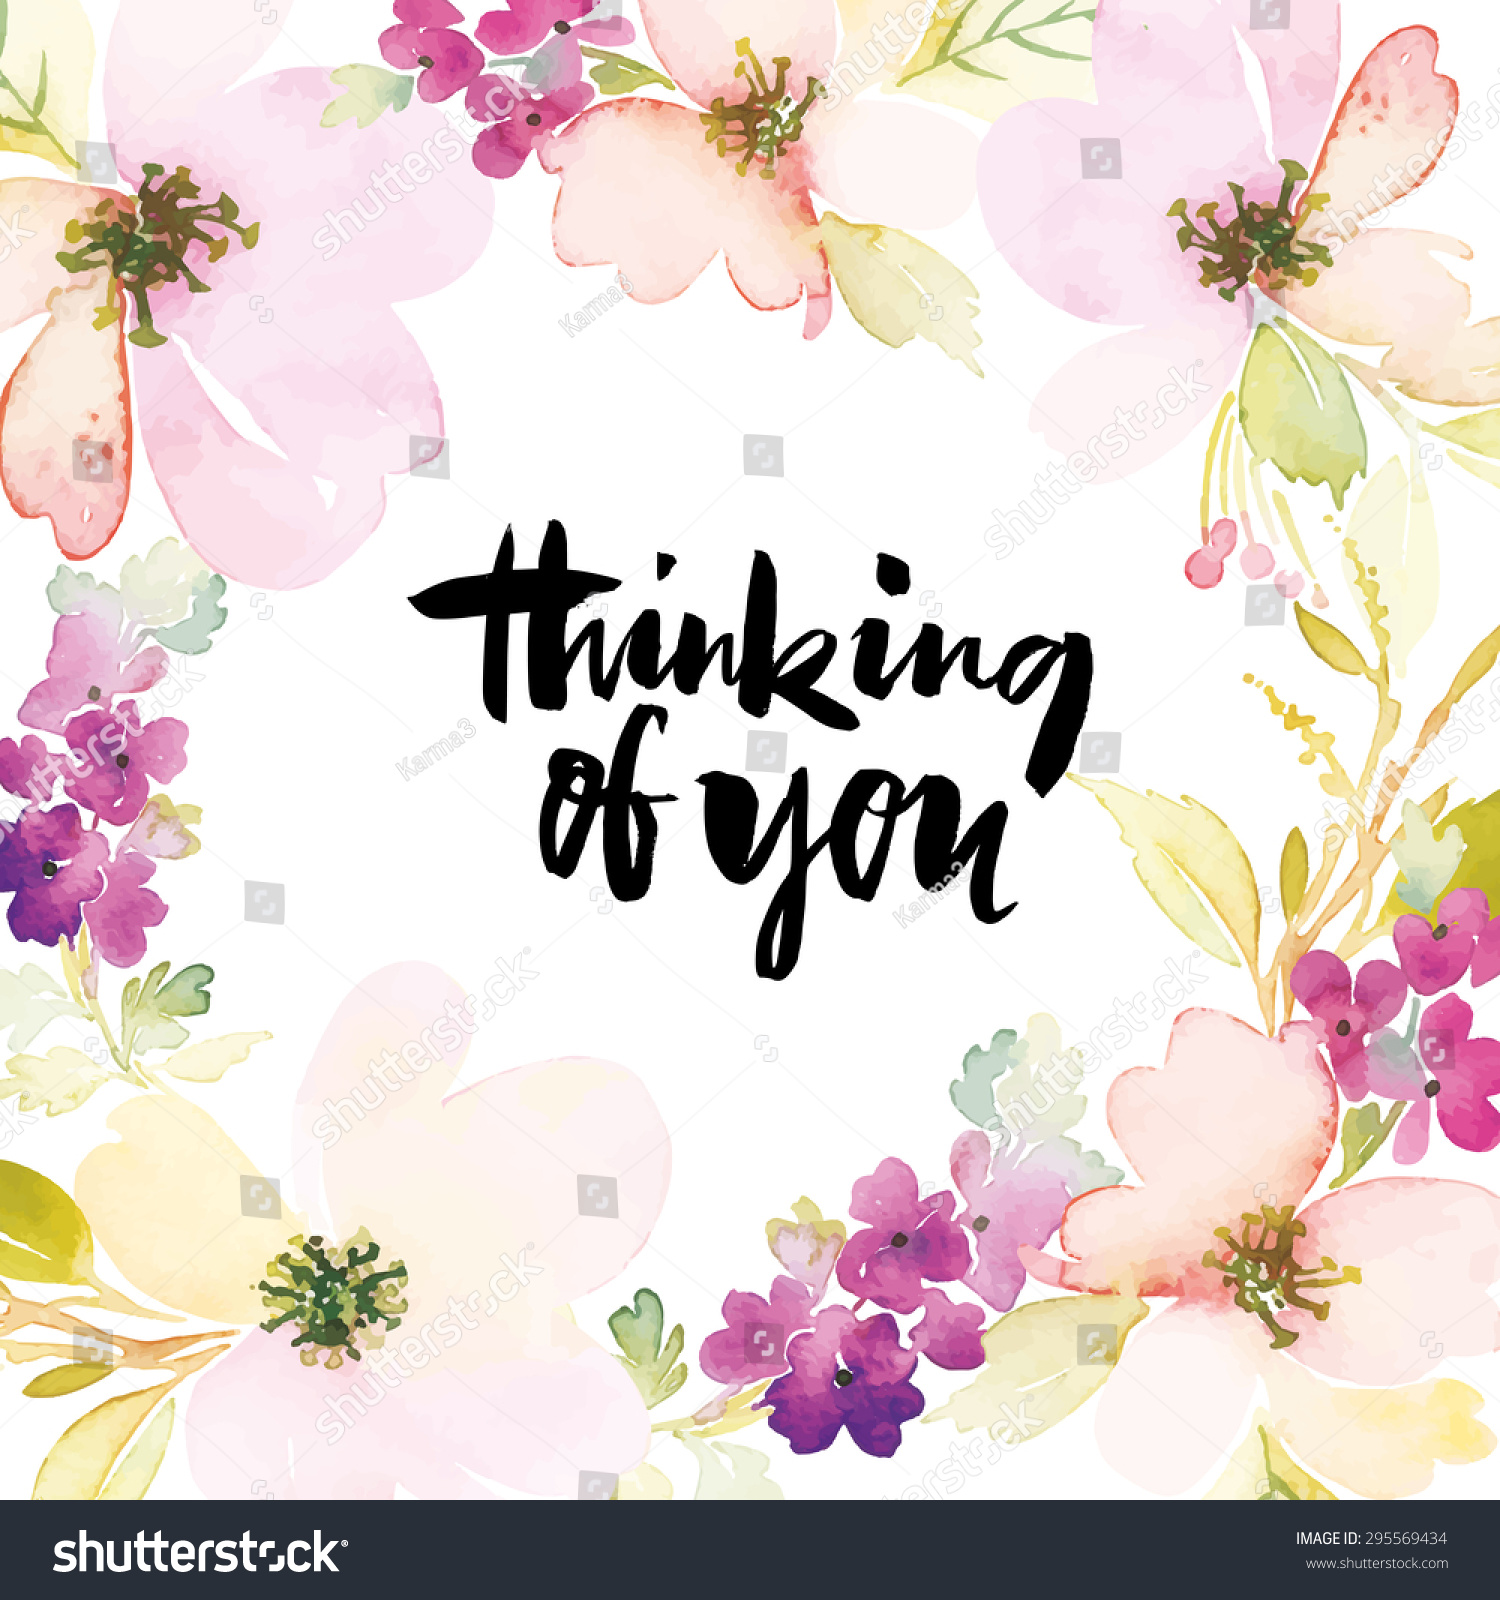 Watercolor Greeting Card Flowers Handmade Thinking Stock Vector